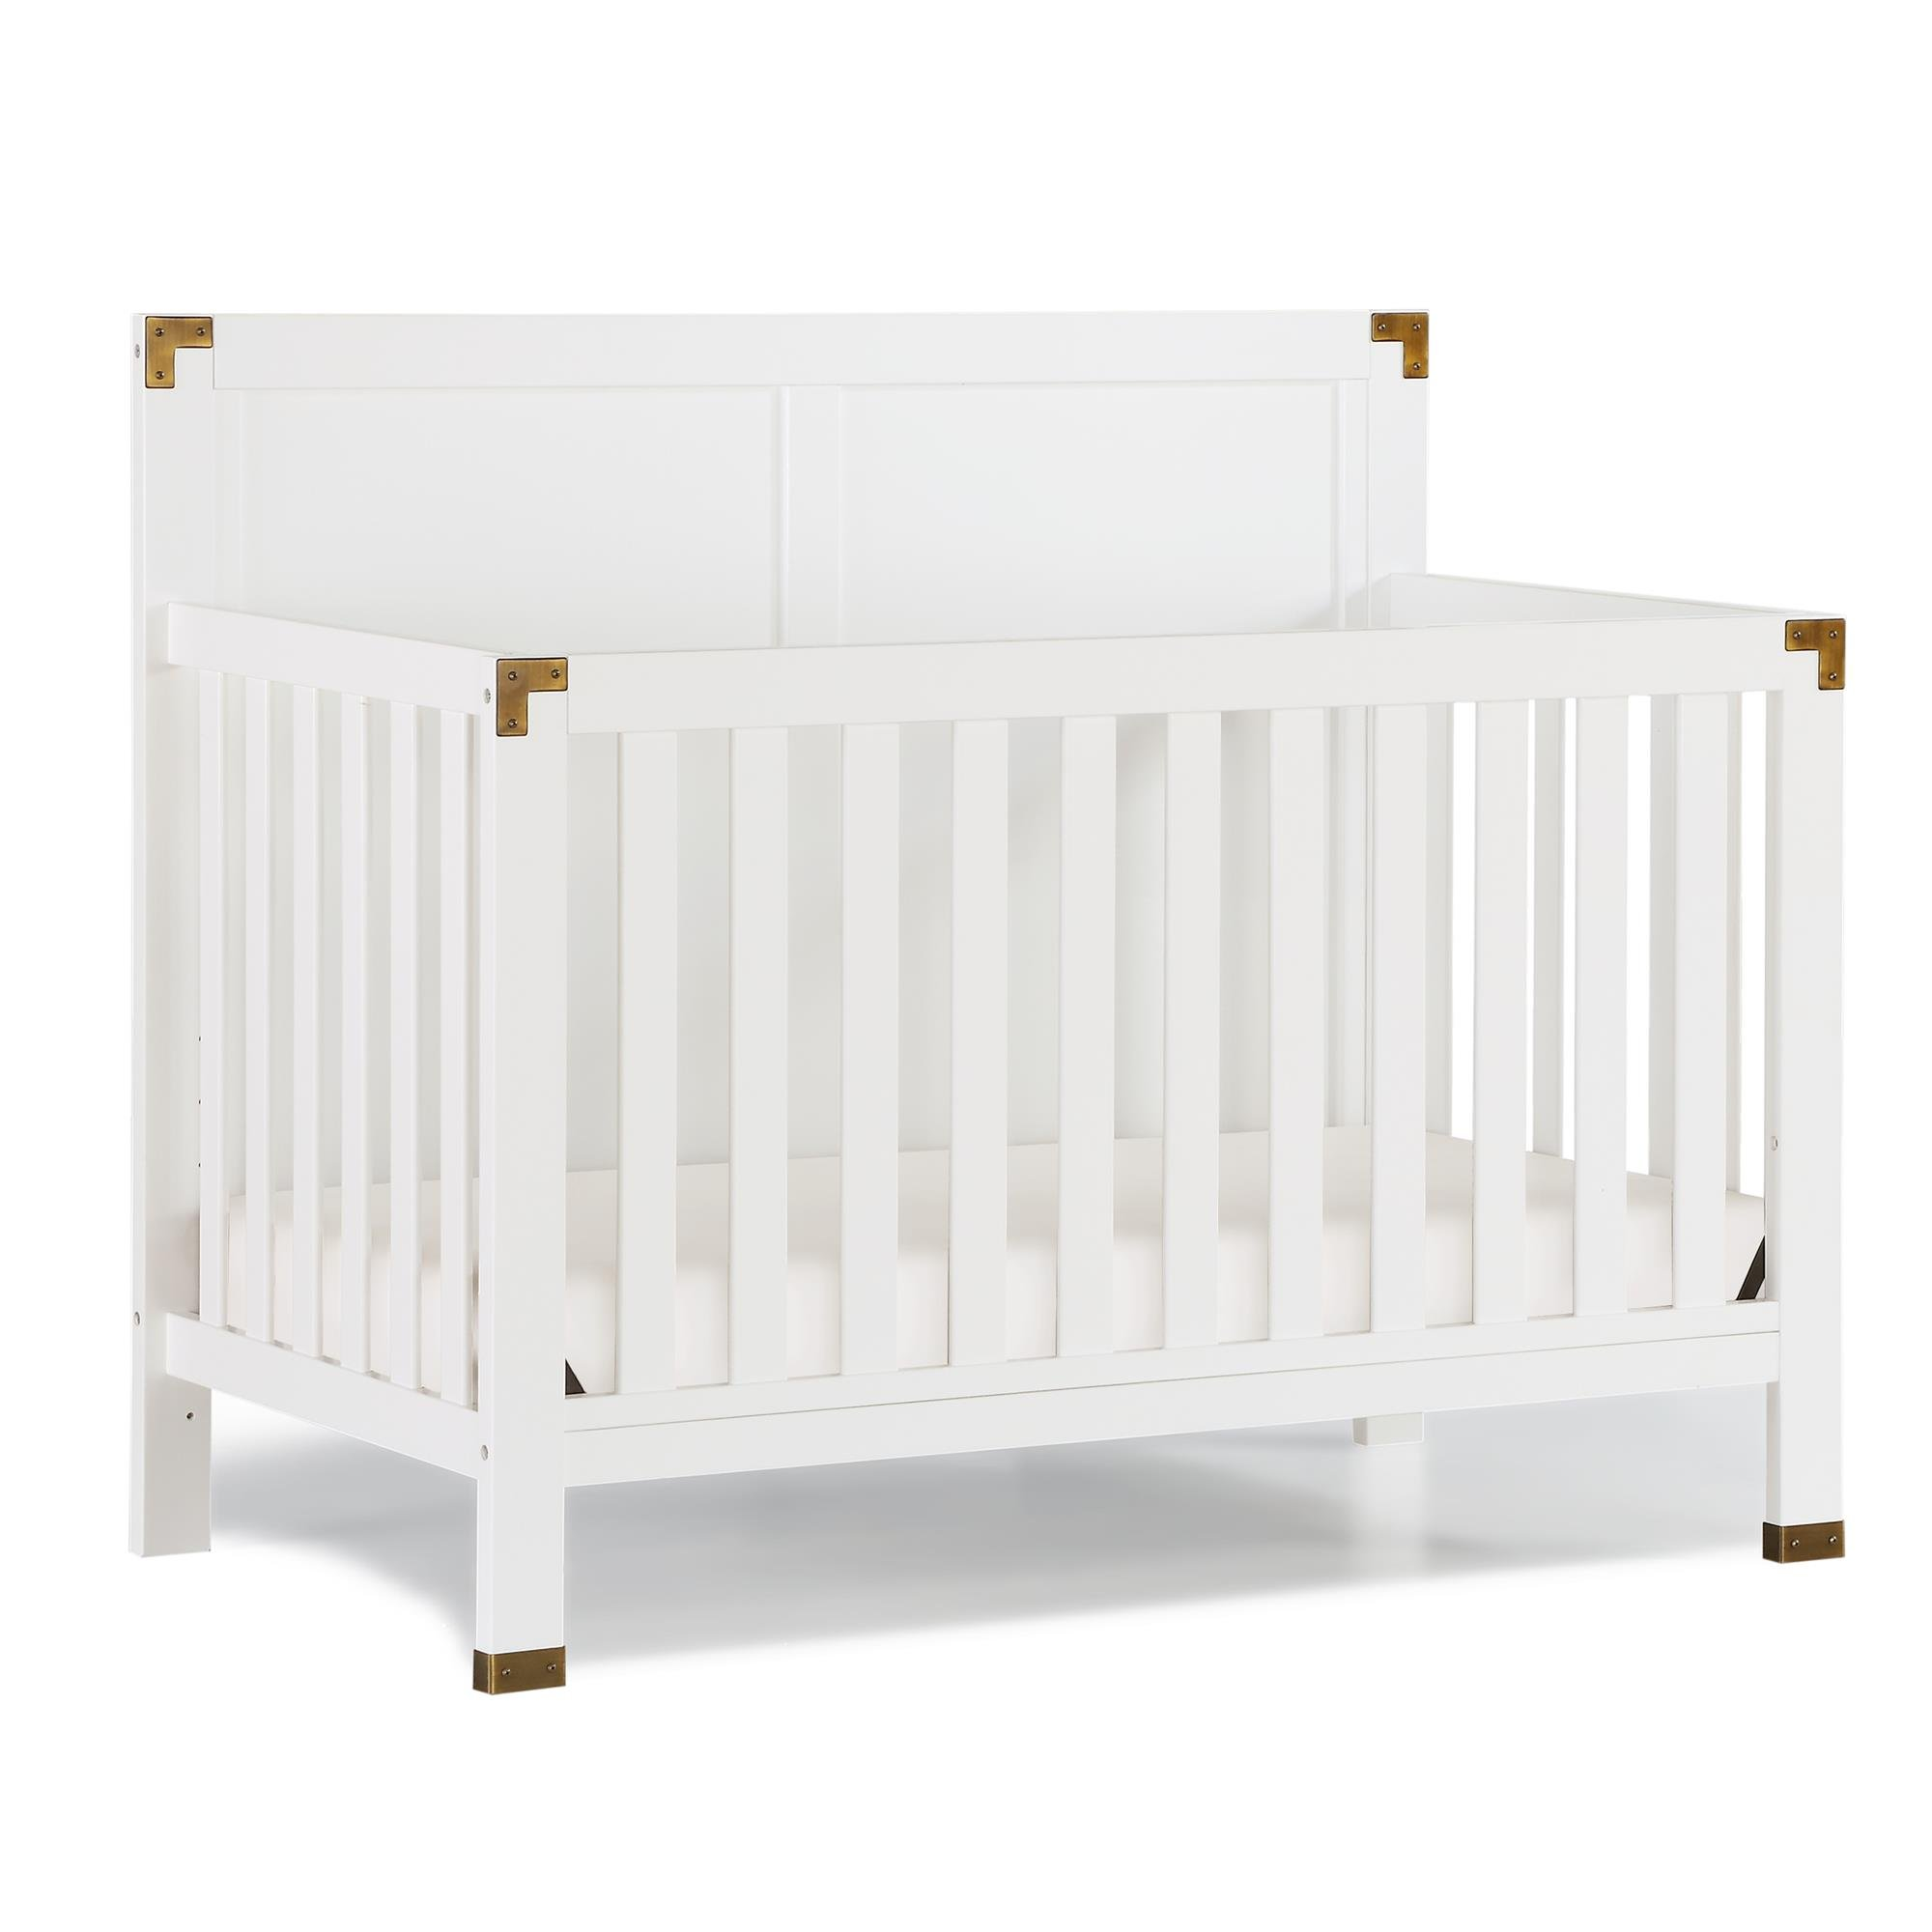 Full Size Conversion Kit Bed Rails for Baby Relax Edgemont, Miles & Rivers Cribs by Dorel Living - White by CC KITS (Image #5)